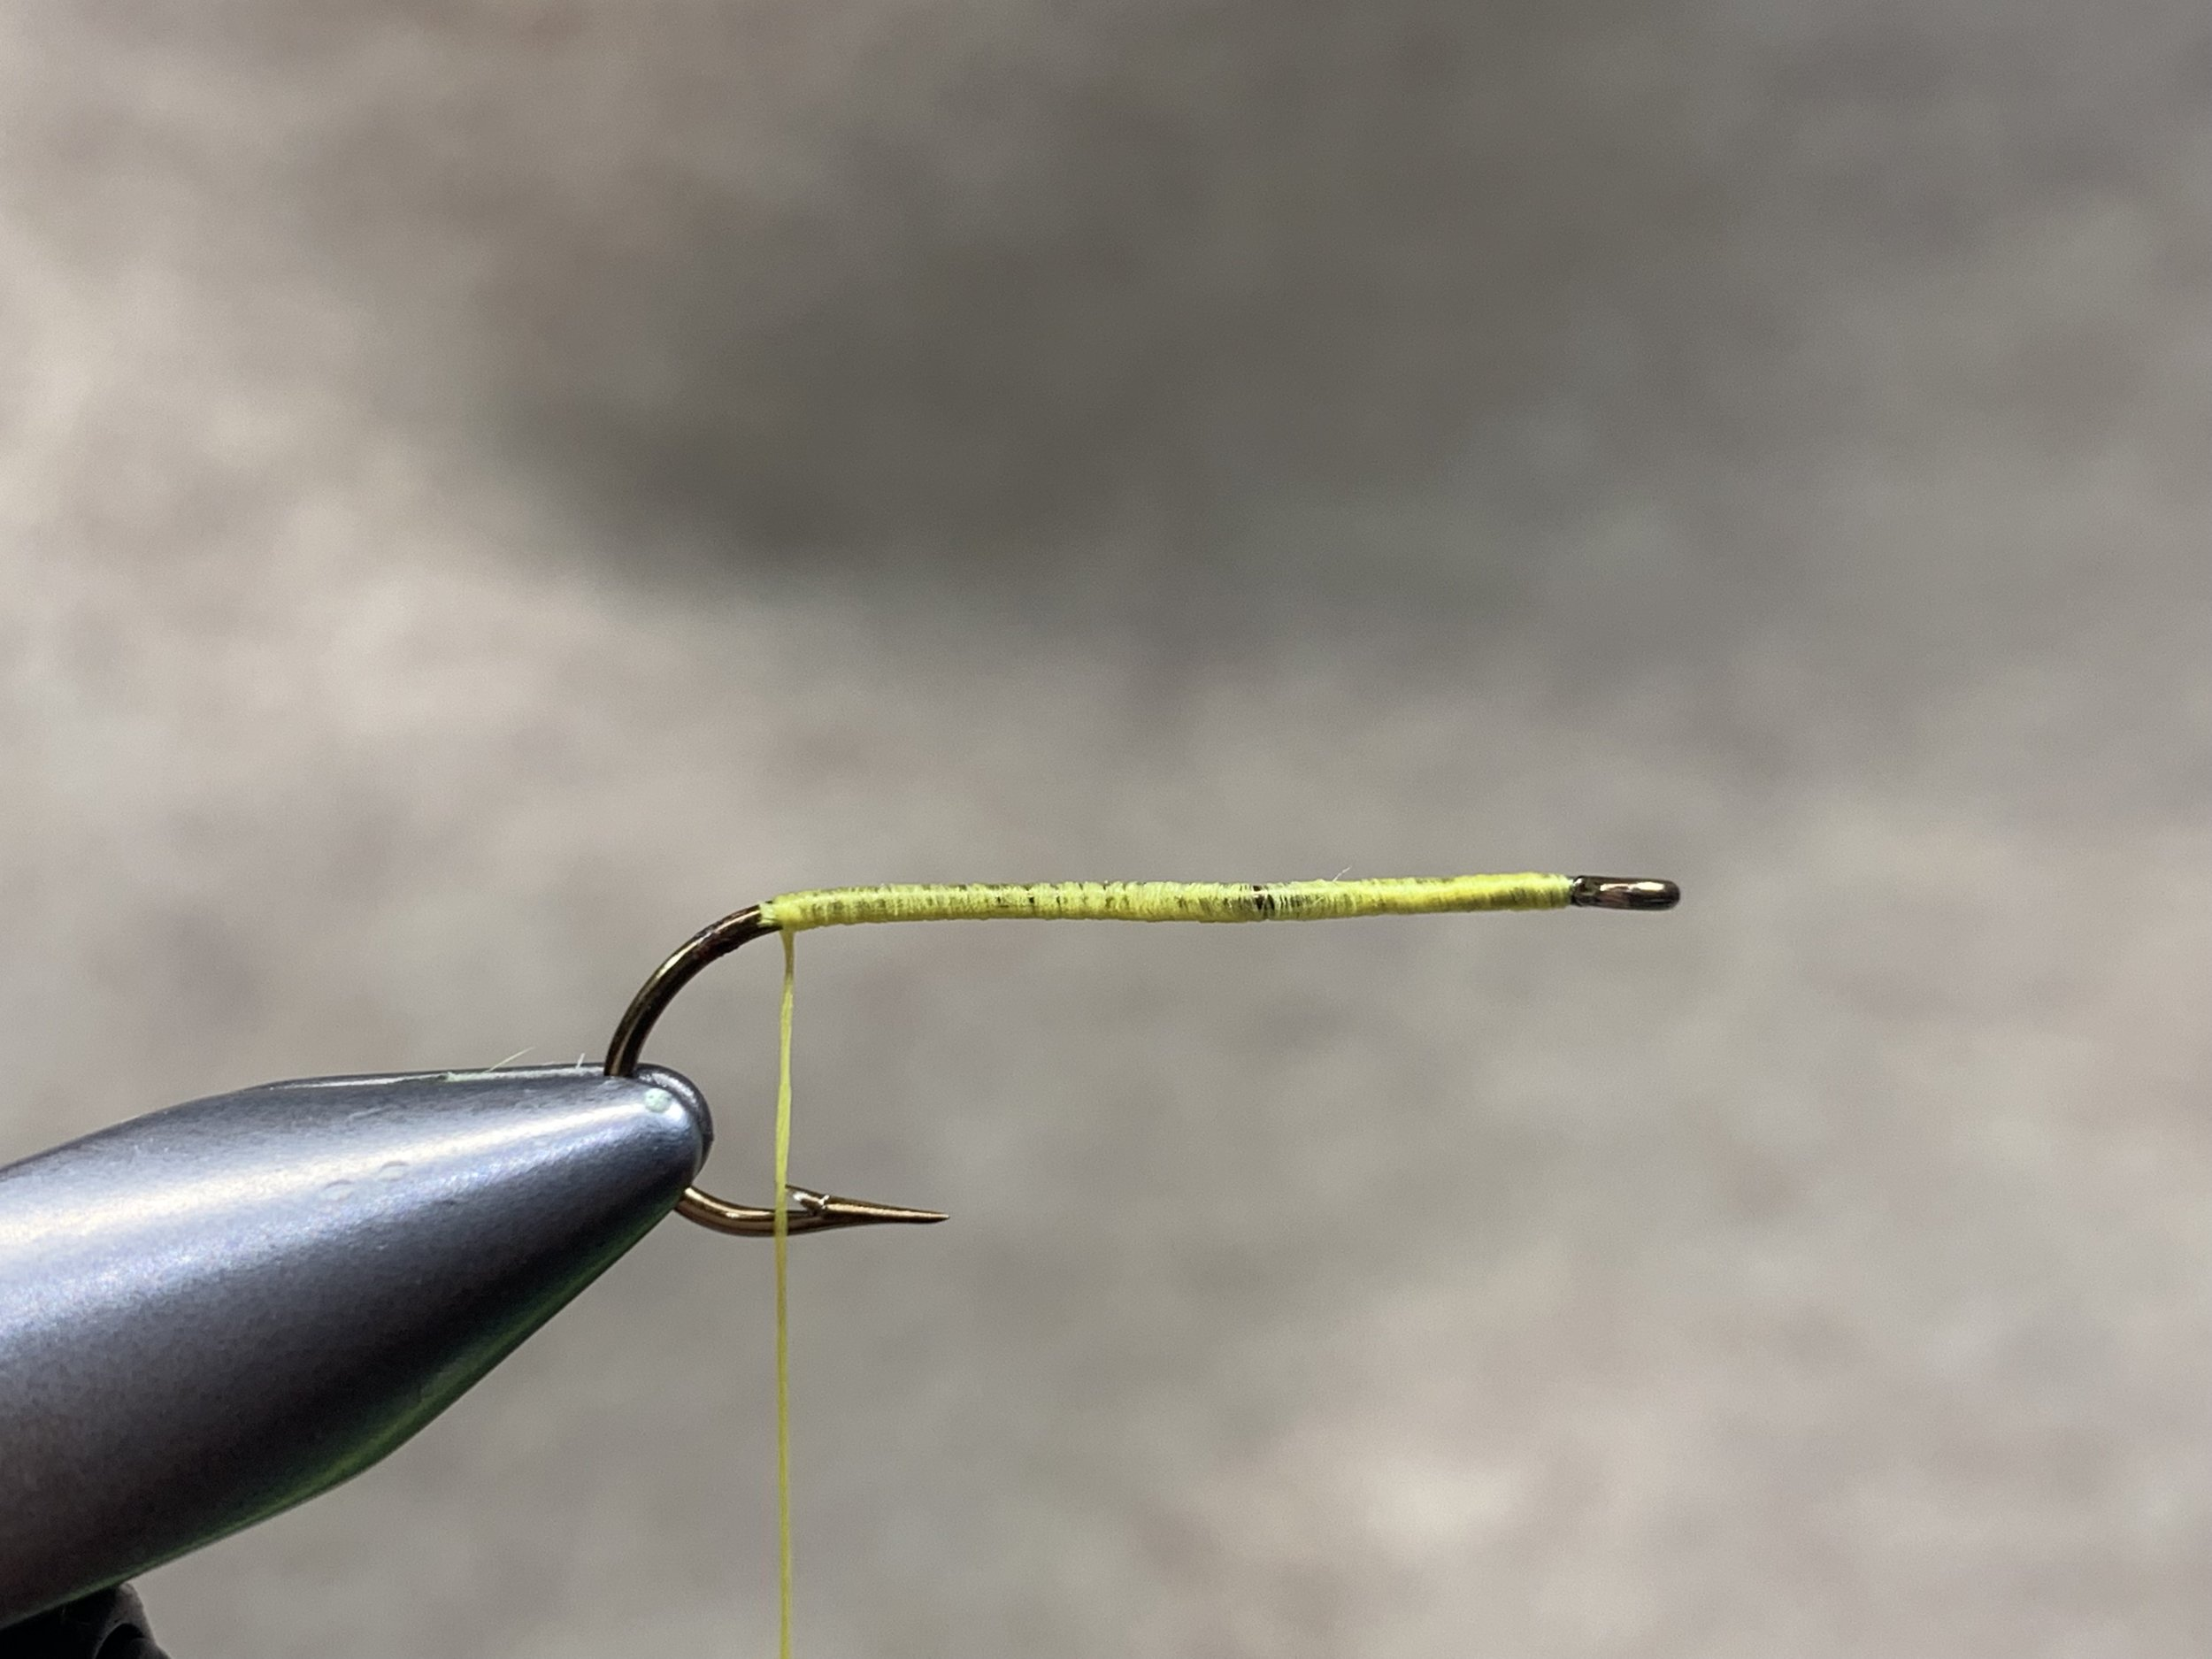 Step 2 - Attach your thread near the eye of the hook and wrap back towards the bend stopping just over the barb.